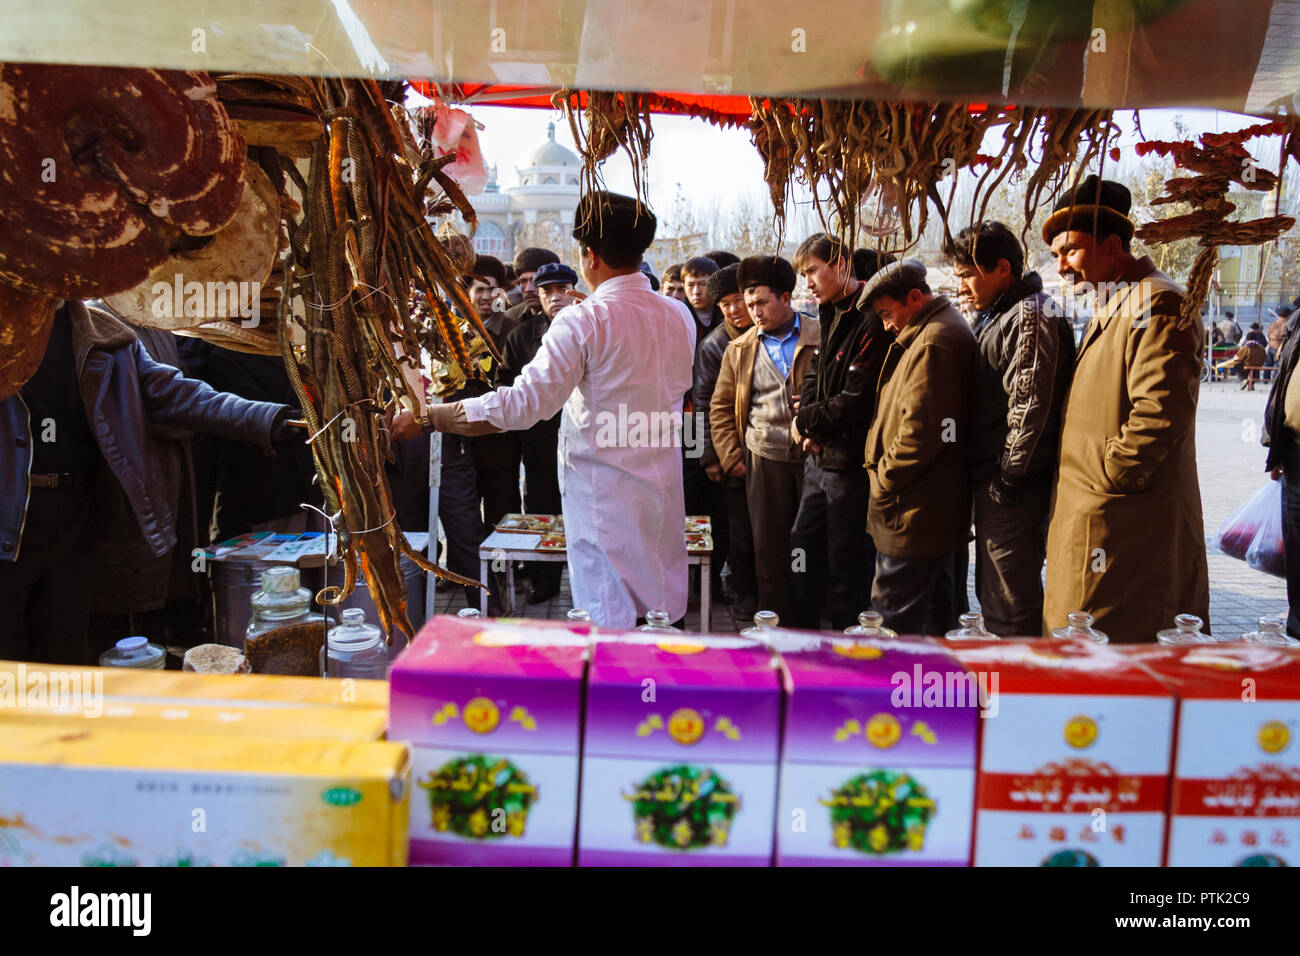 Kashgar, Xinjiang, China : Uyghur men gather around a traditional chemist´s stall at the Sunday Bazaar. - Stock Image